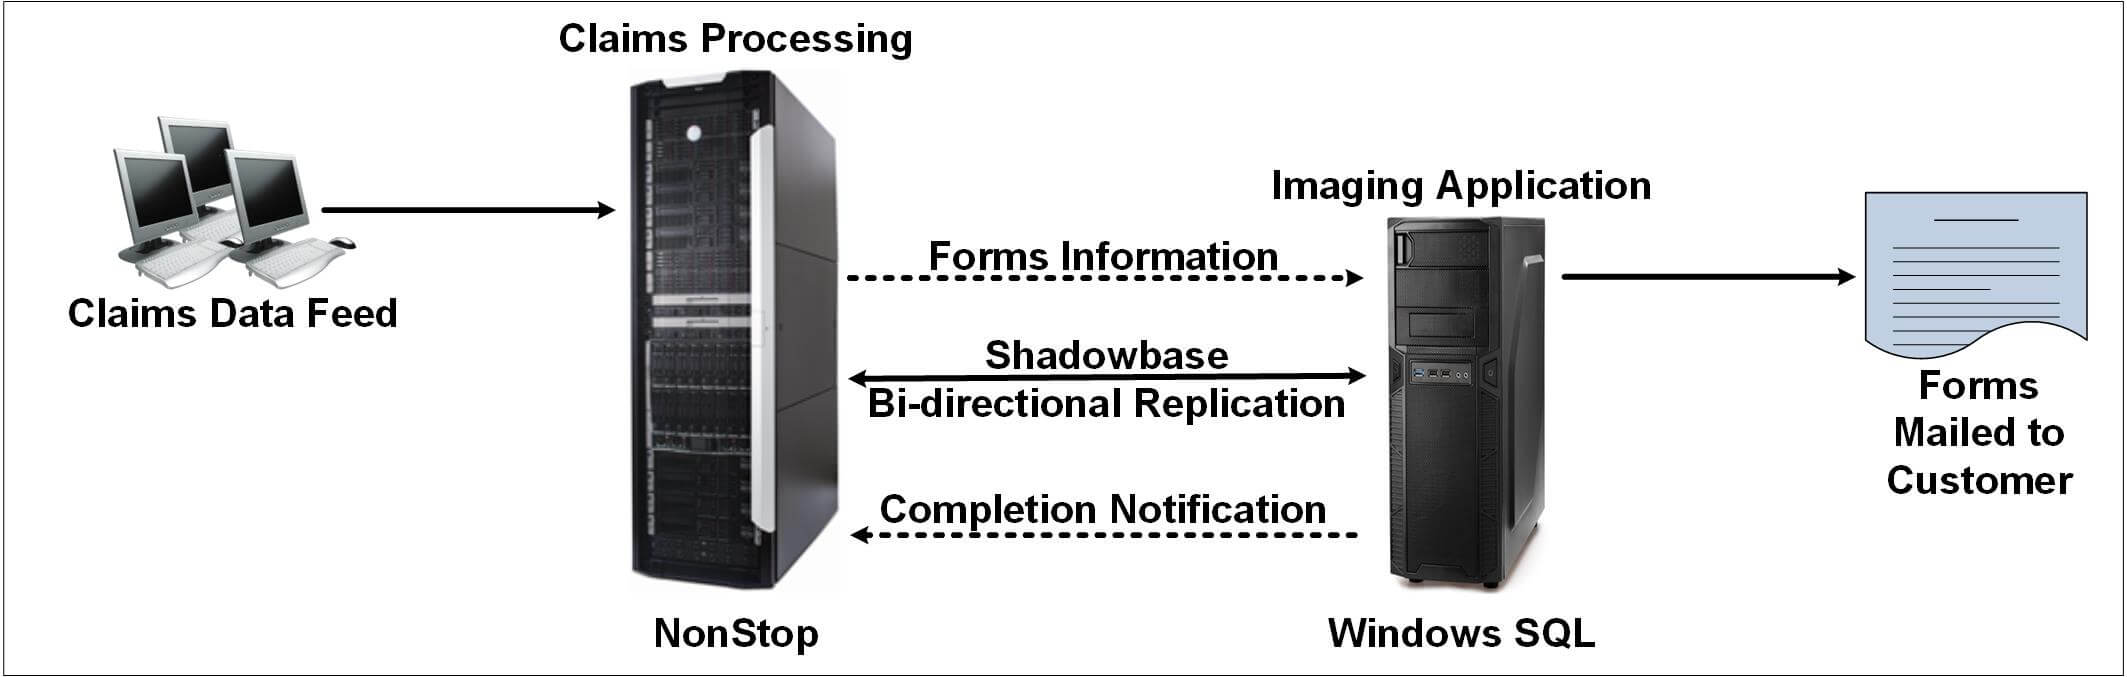 Shadowbase-heterogeneous-continuous-processing-system